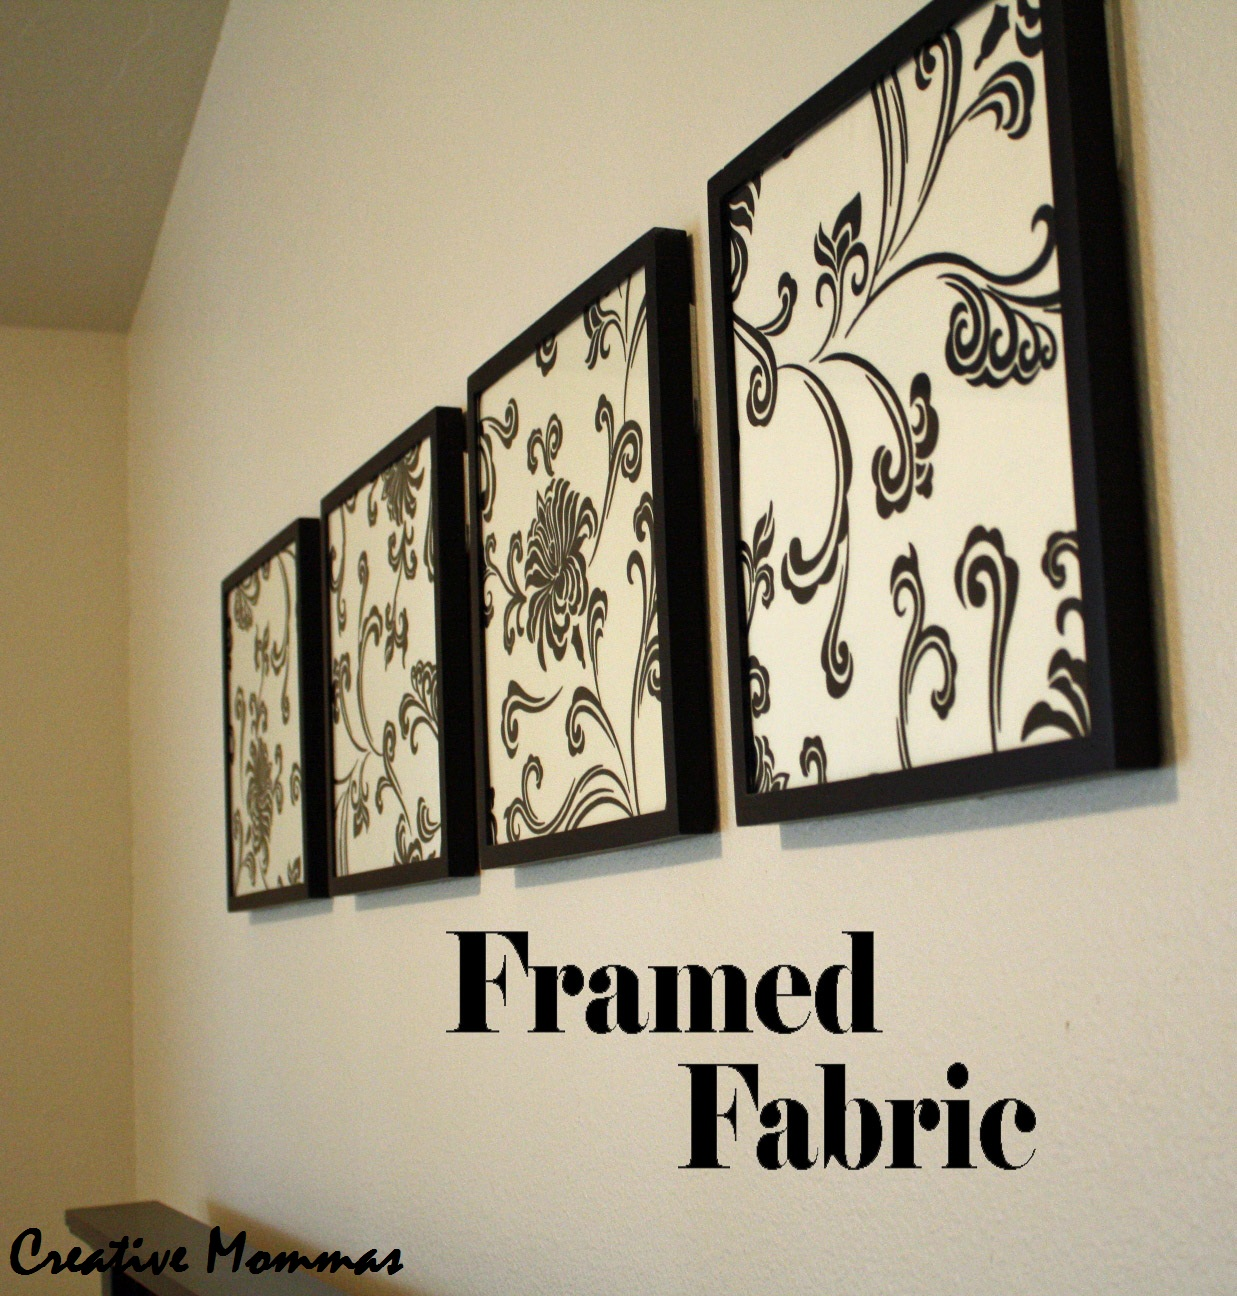 Creative mommas framed fabric wall decor Wall decor ideas